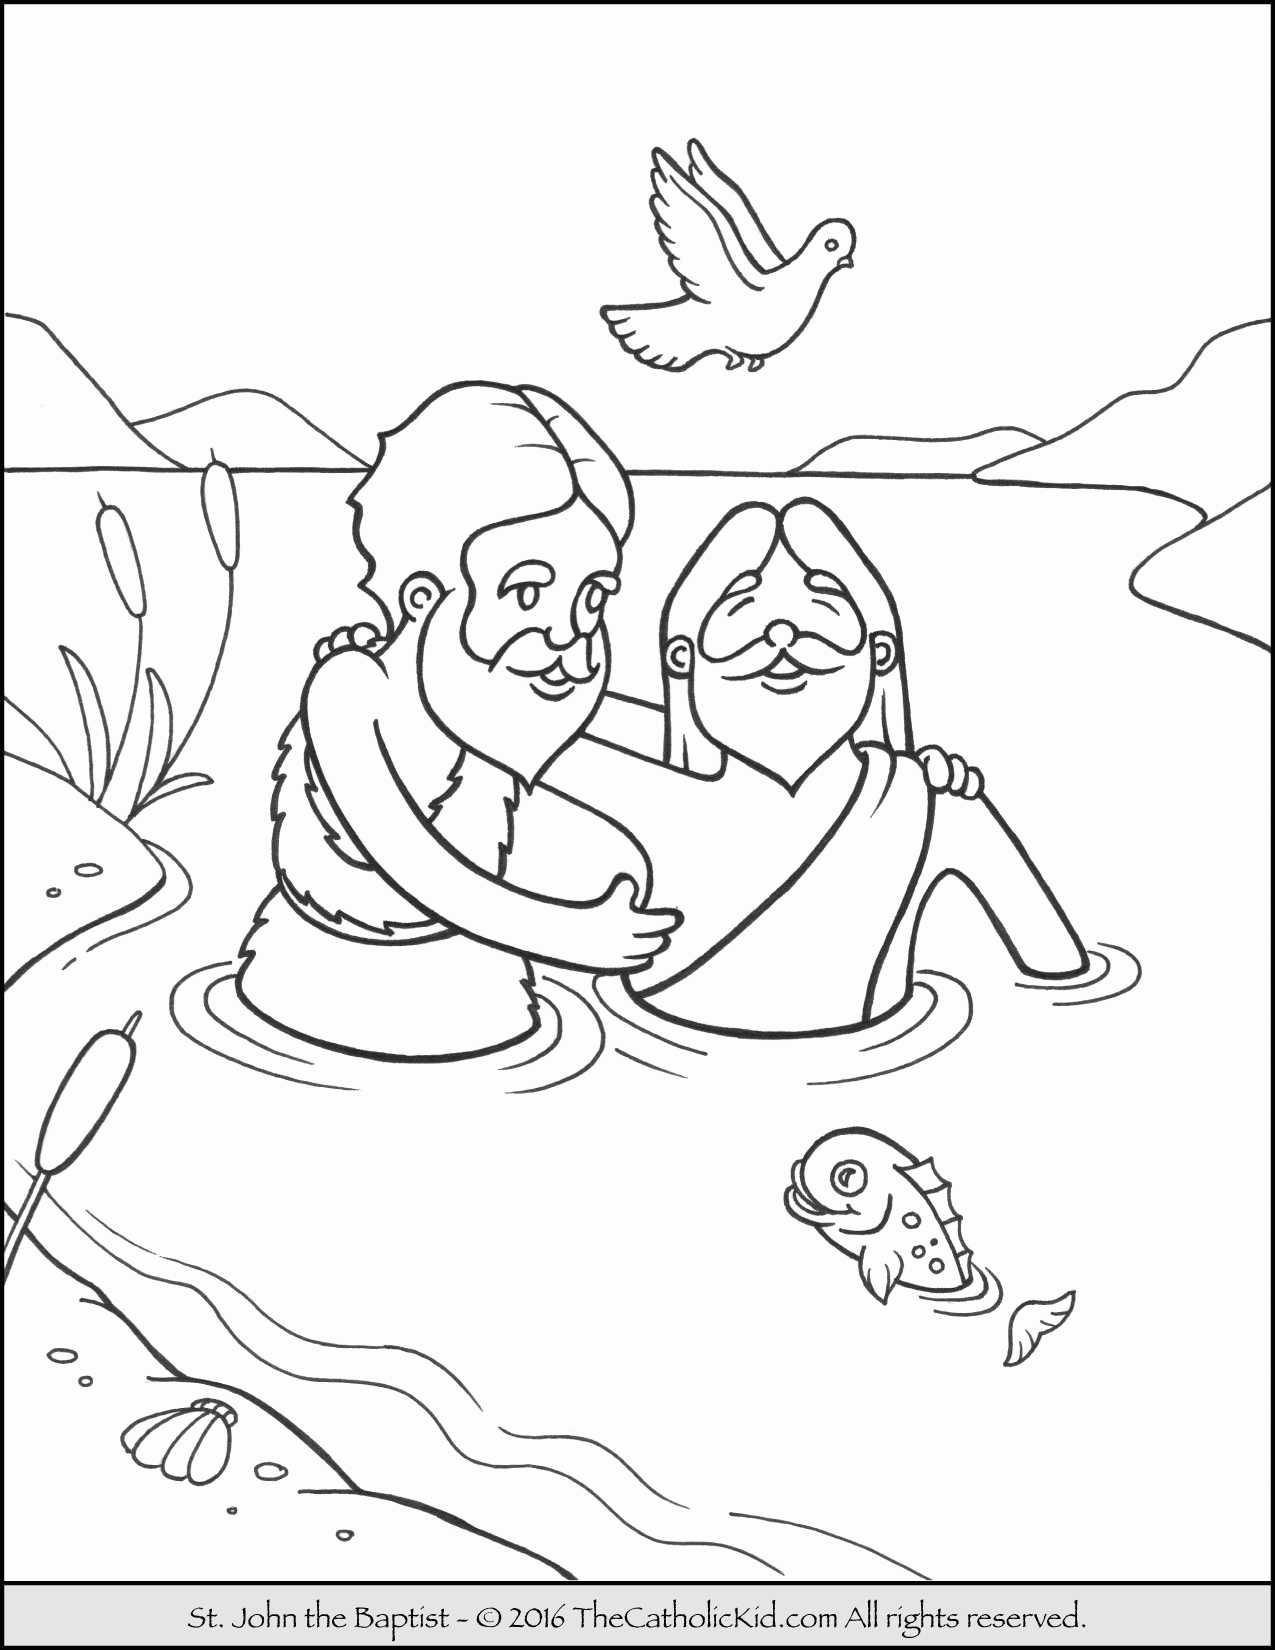 Finding Nemo Worksheet and 40 Finding Nemo Coloring Pages Free Printables – Free Coloring Sheets